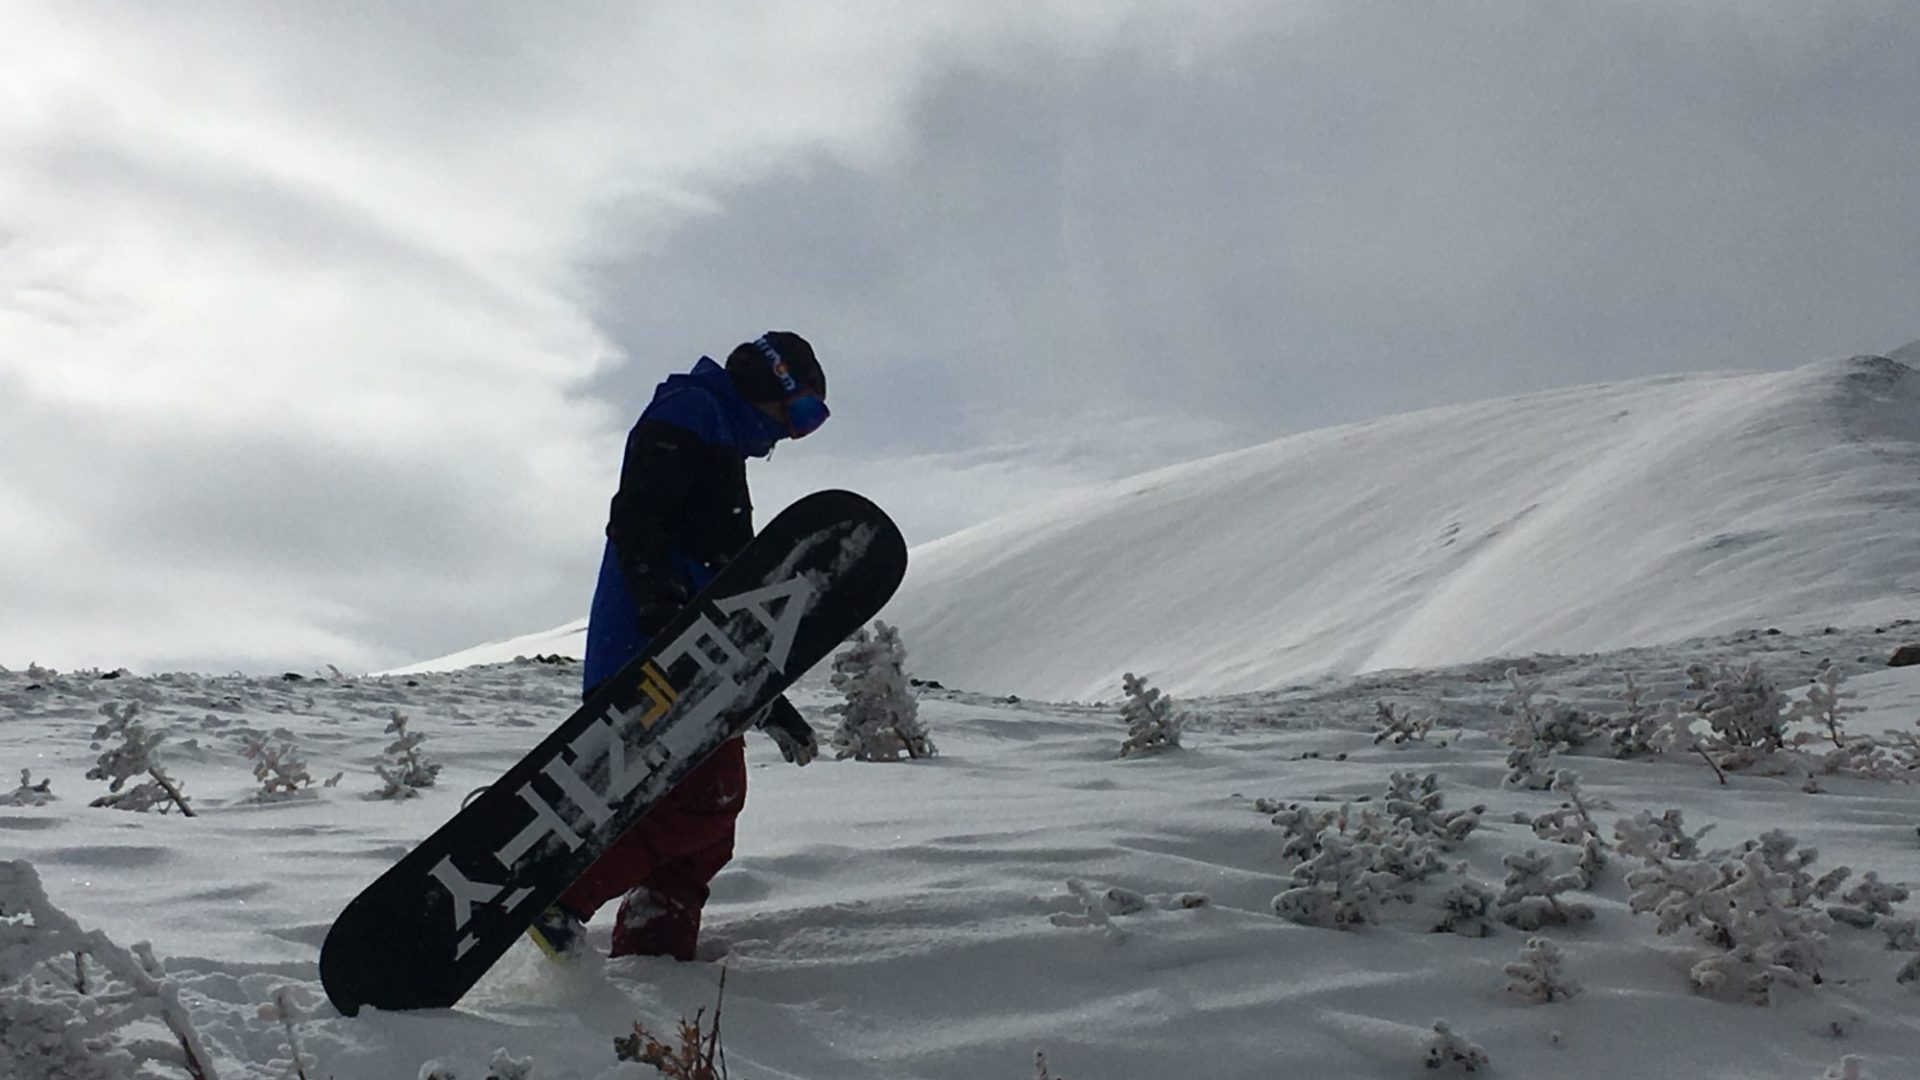 Affinity Snowboard Company